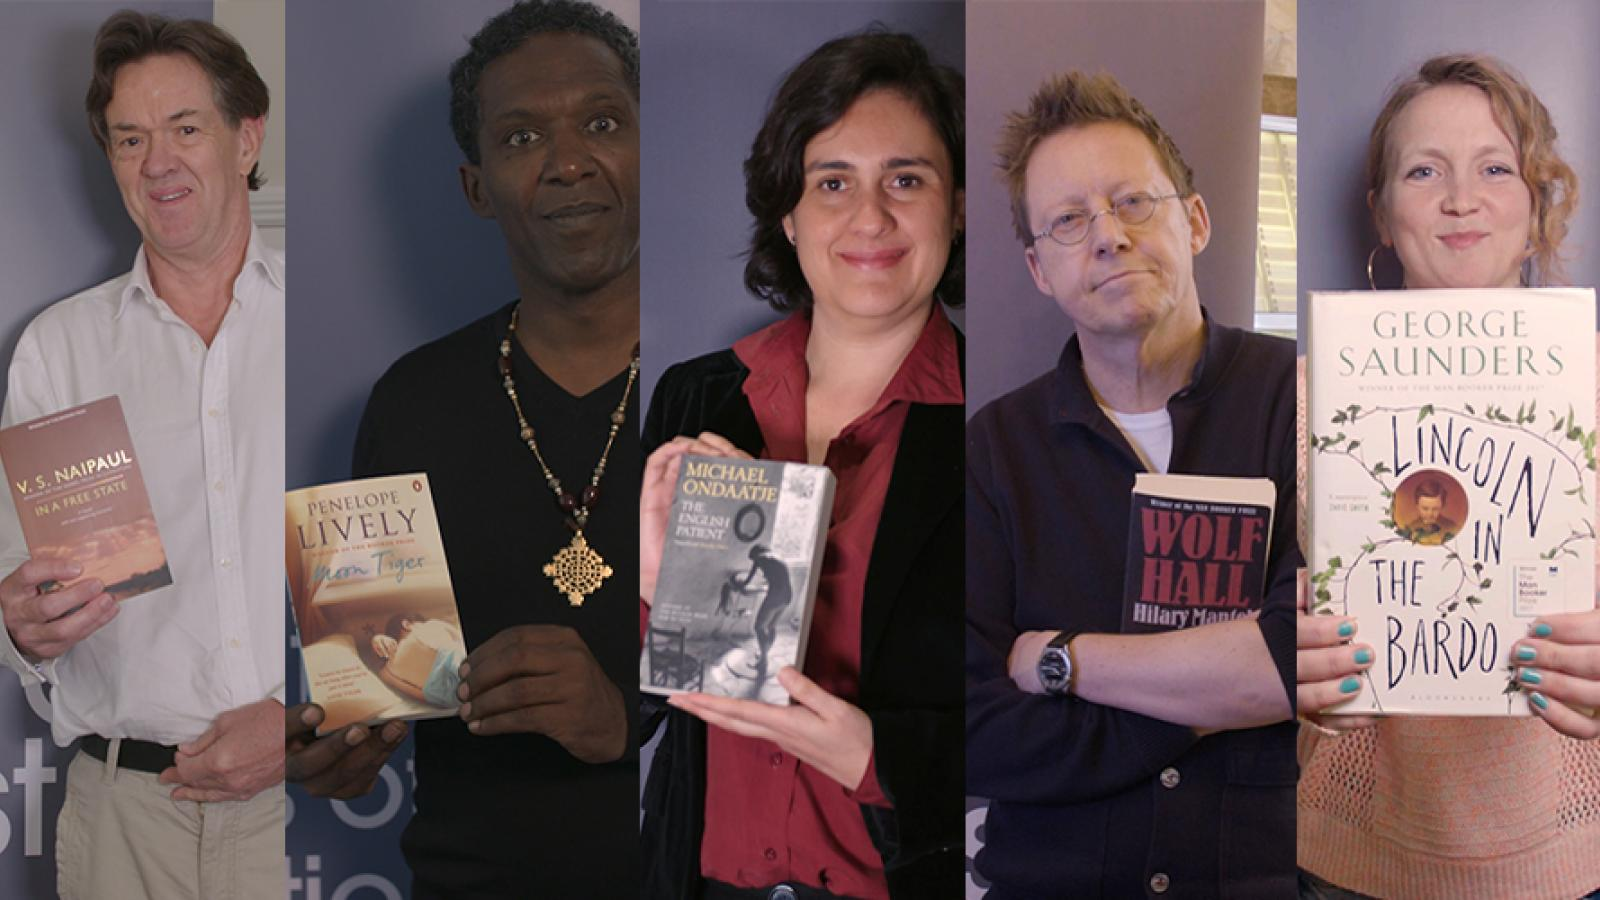 The Golden Man Booker judges and their choices: Golden Man Booker Prize site